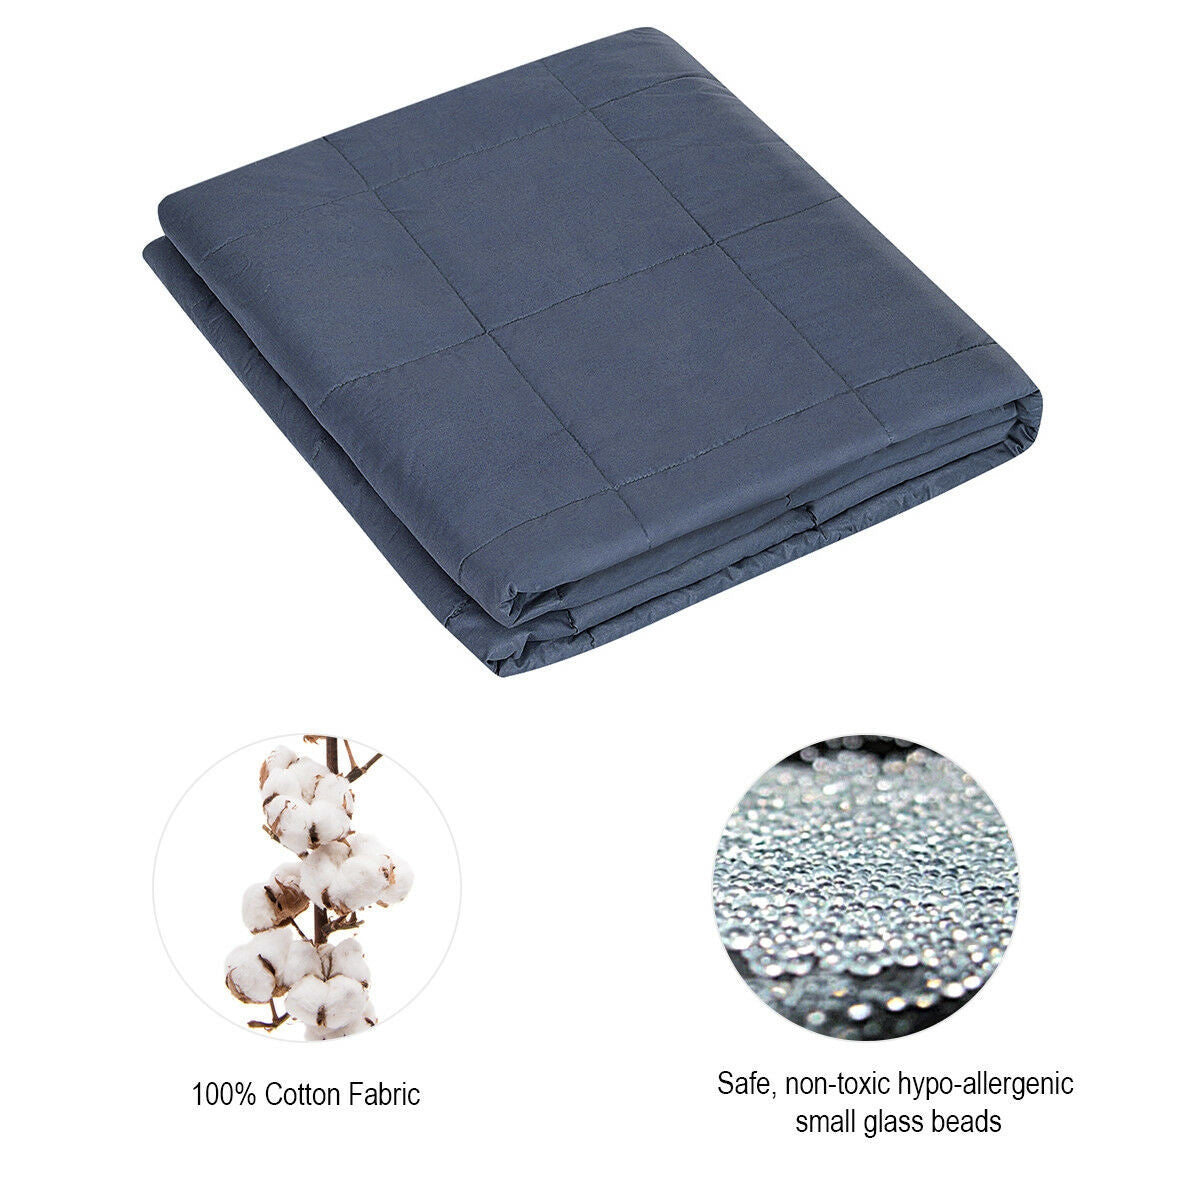 20 lbs Heavy Gravity Sensory Weighted Blanket with Cover Glass Beads